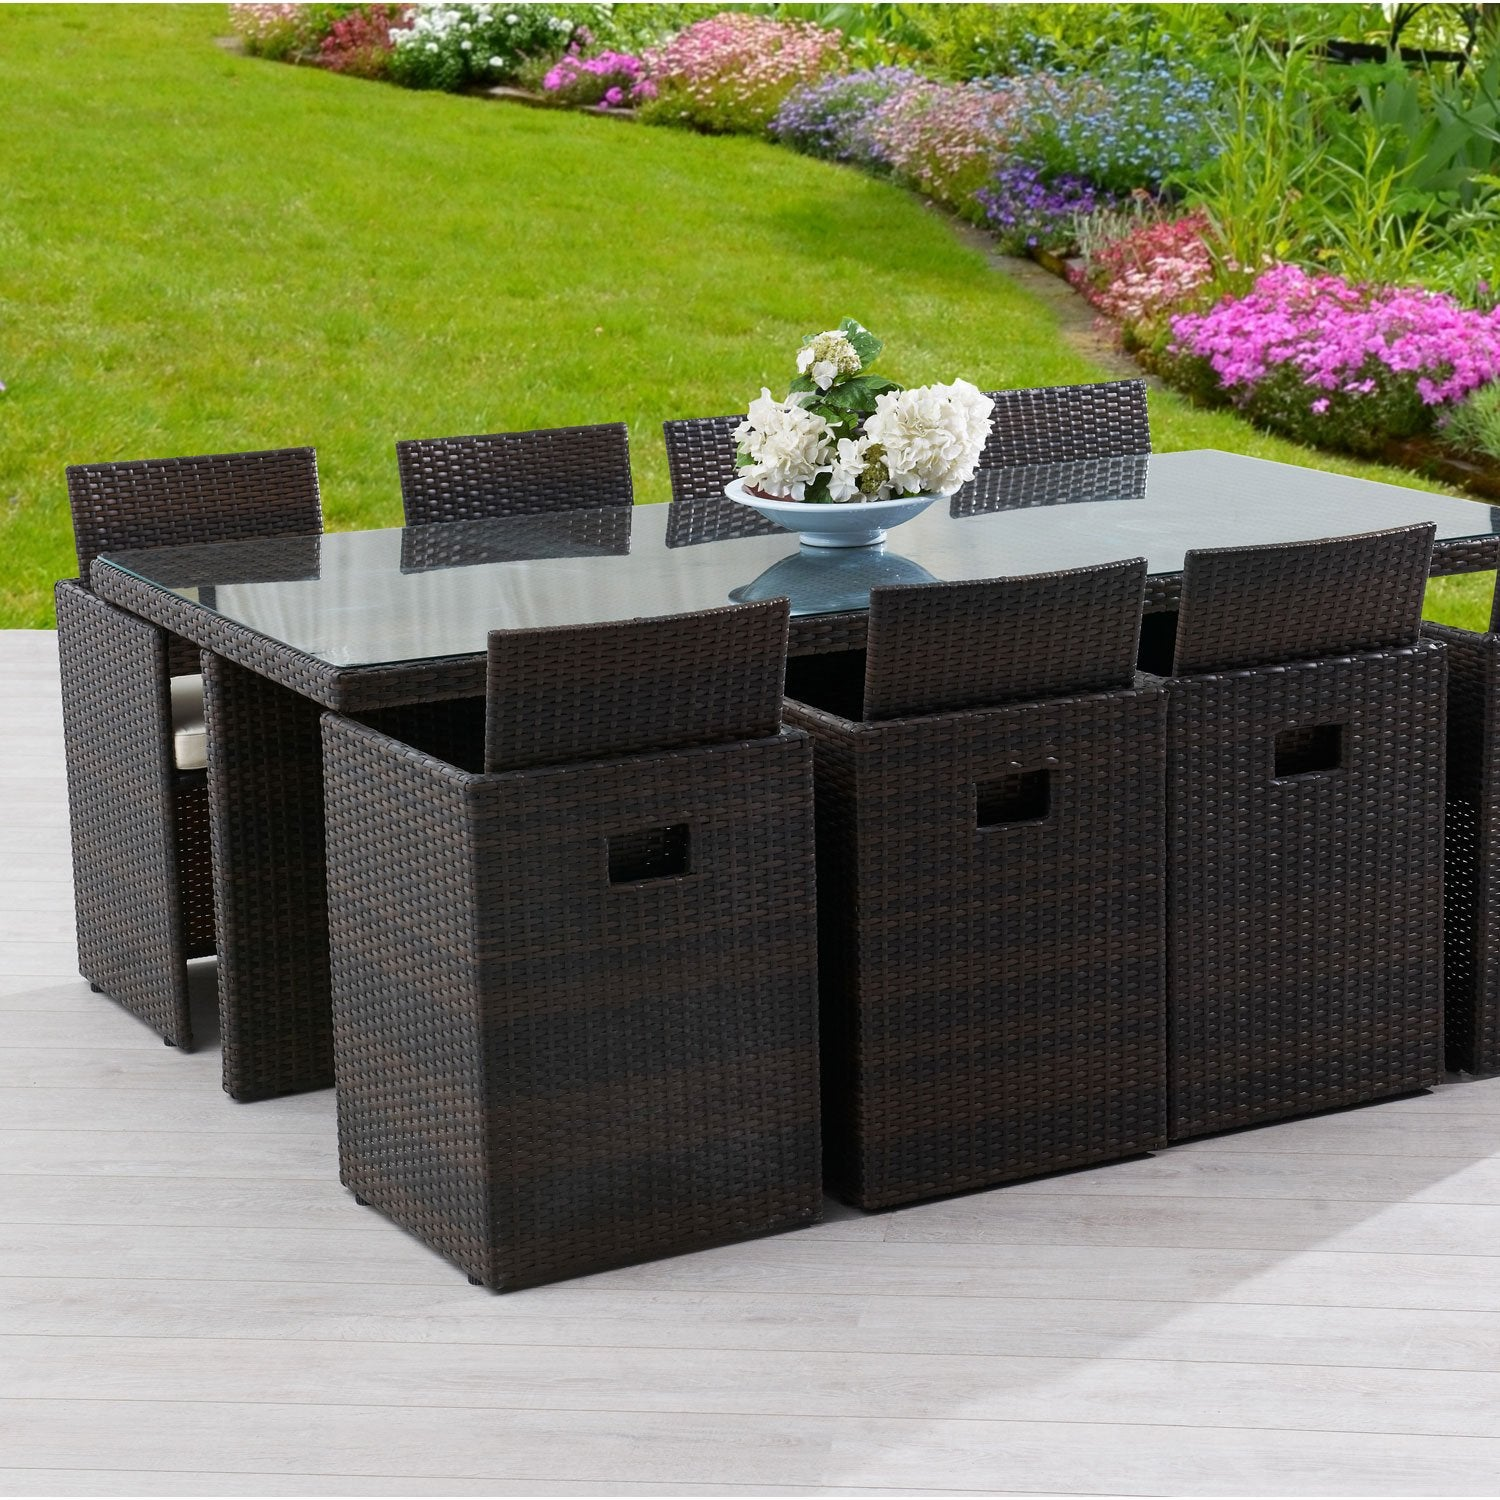 Salon de jardin encastrable r sine tress e marron 1 table for Ensemble salon exterieur